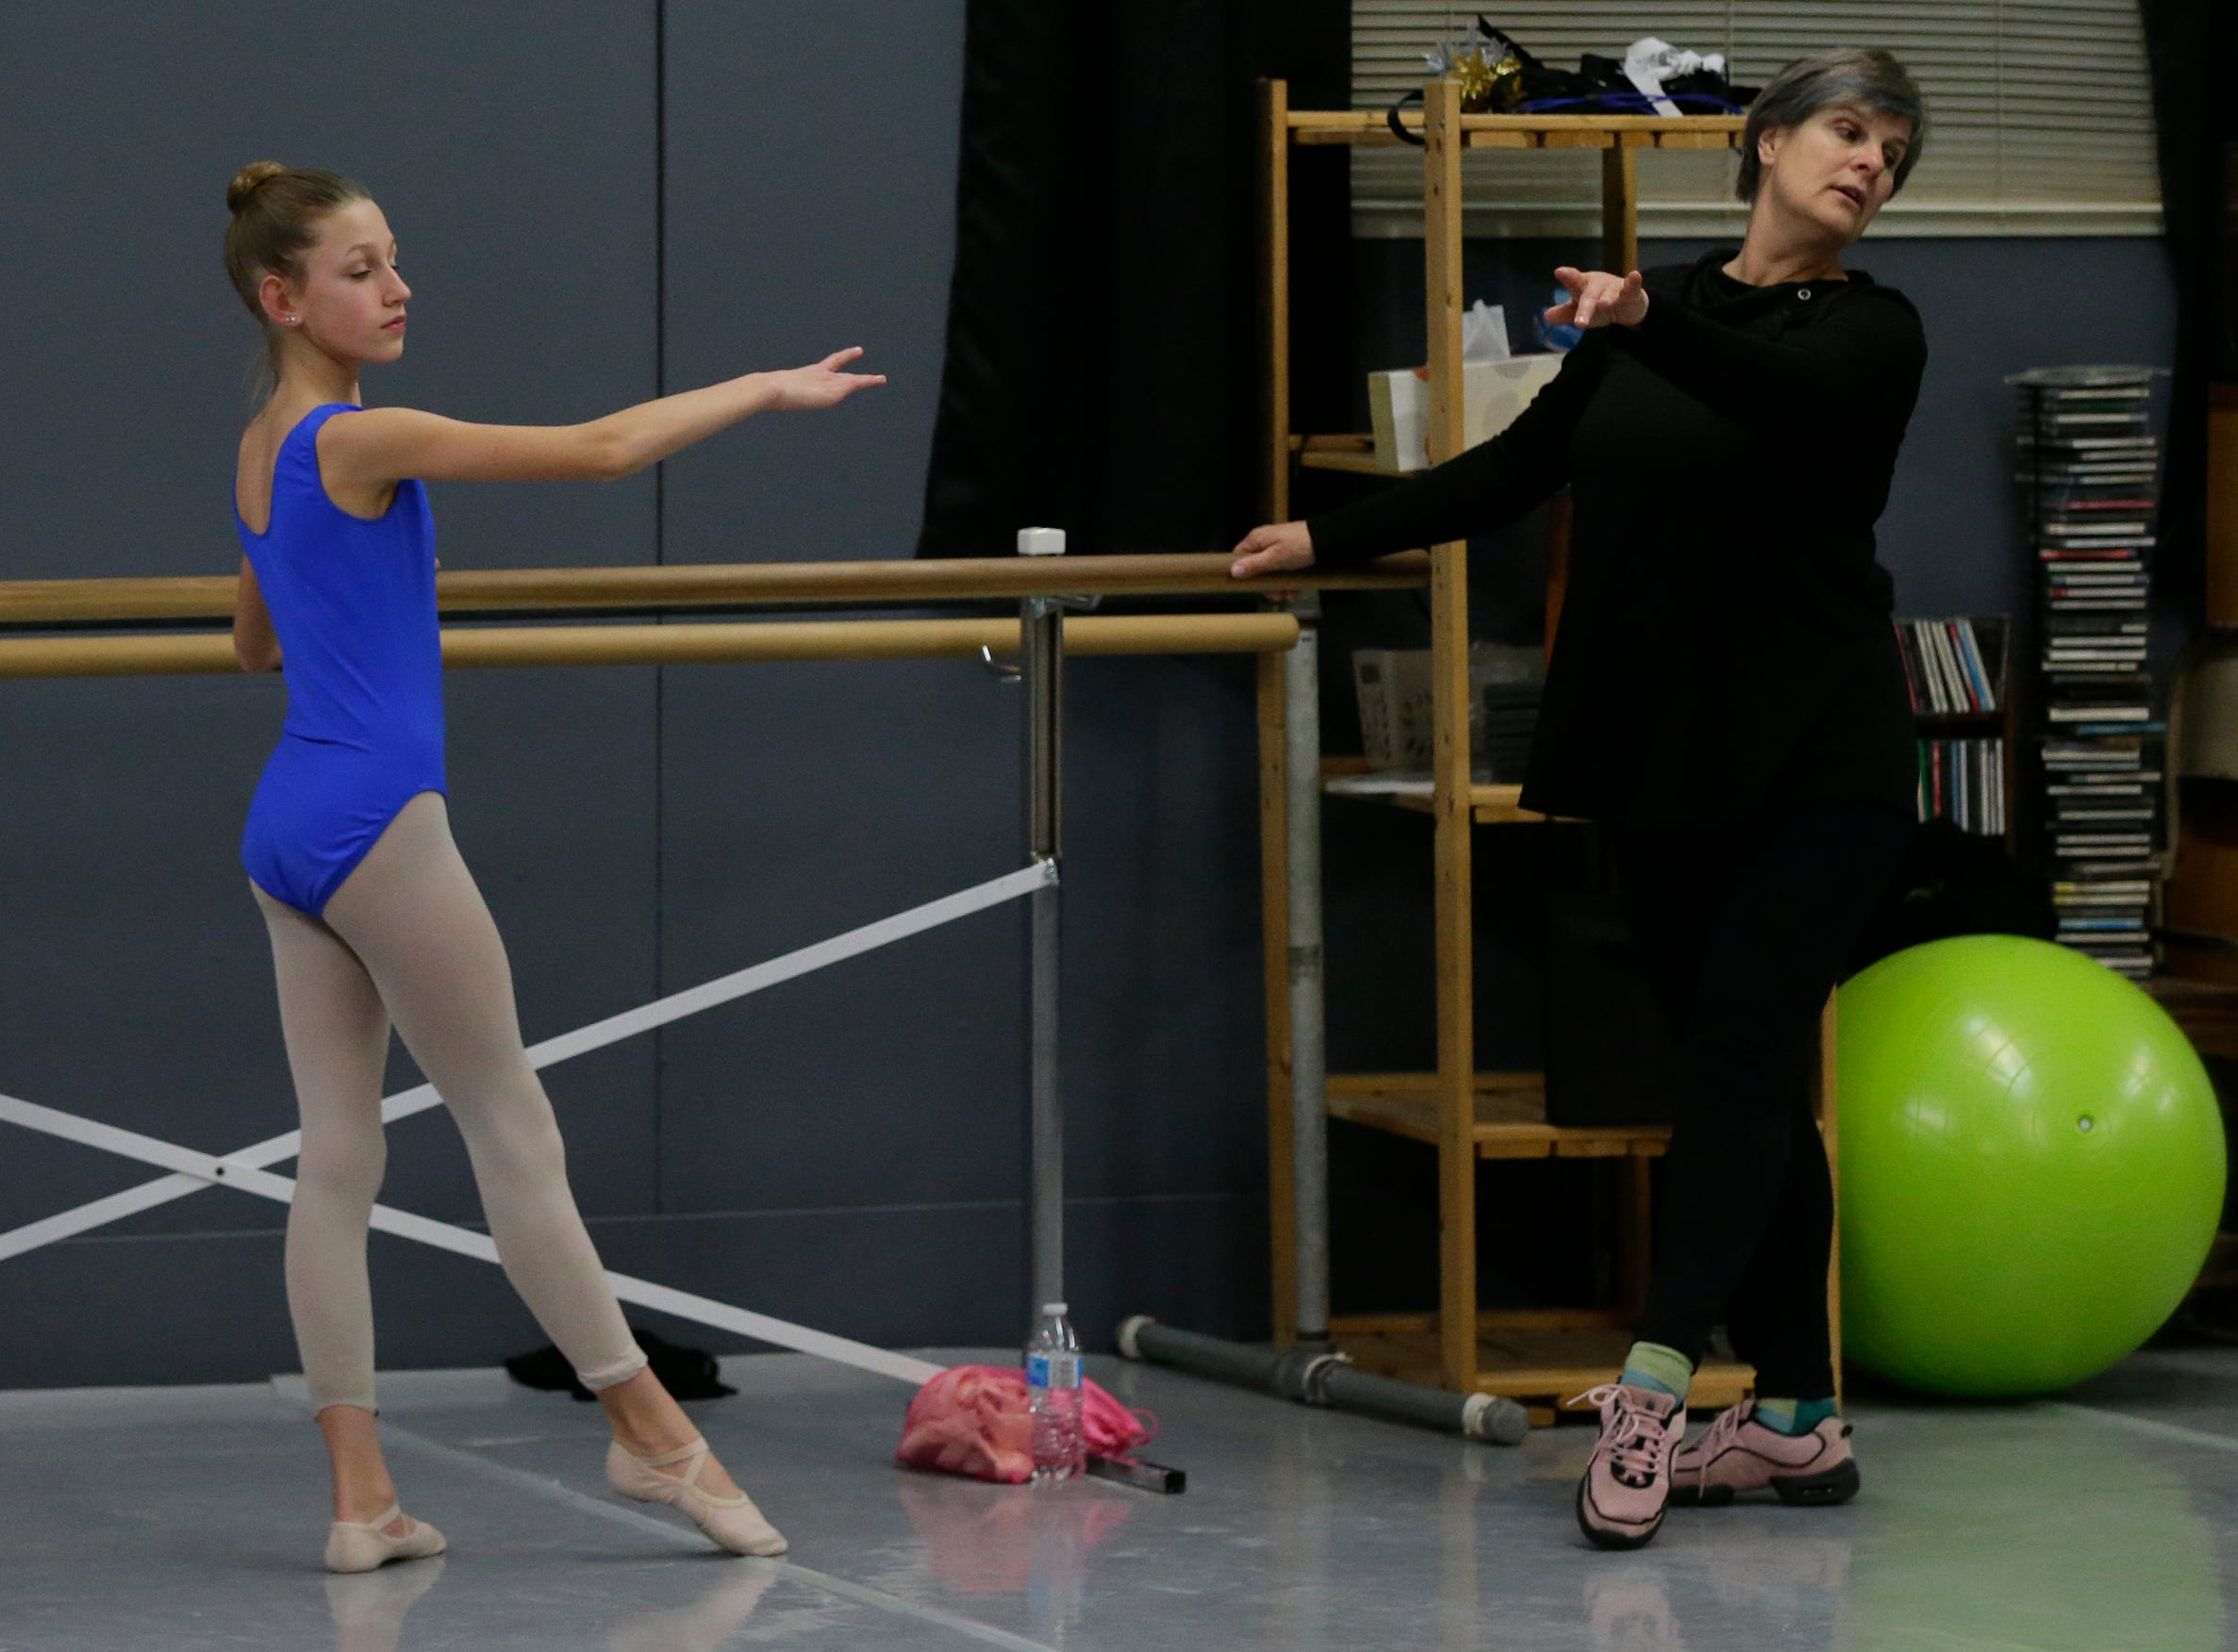 Anne Marie Abderholden works with the dancers.  Dancers practice ballet at Valley Academy of the Arts located at 139 N. Lake Street in Neenah, Wis., Tuesday, December 4, 2018.